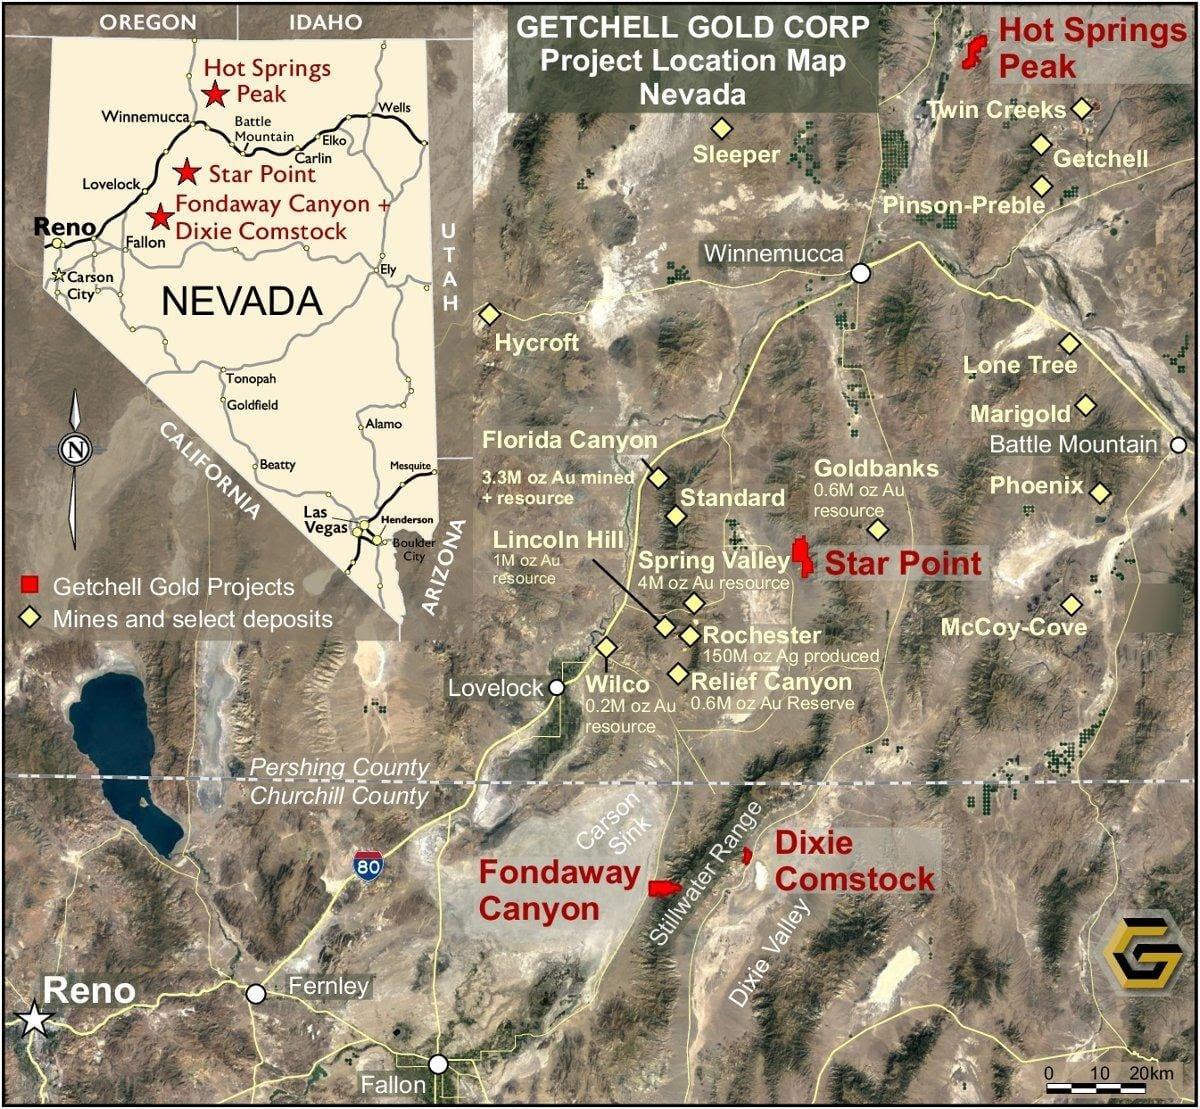 Getchell-Gold-Project-Location-Map